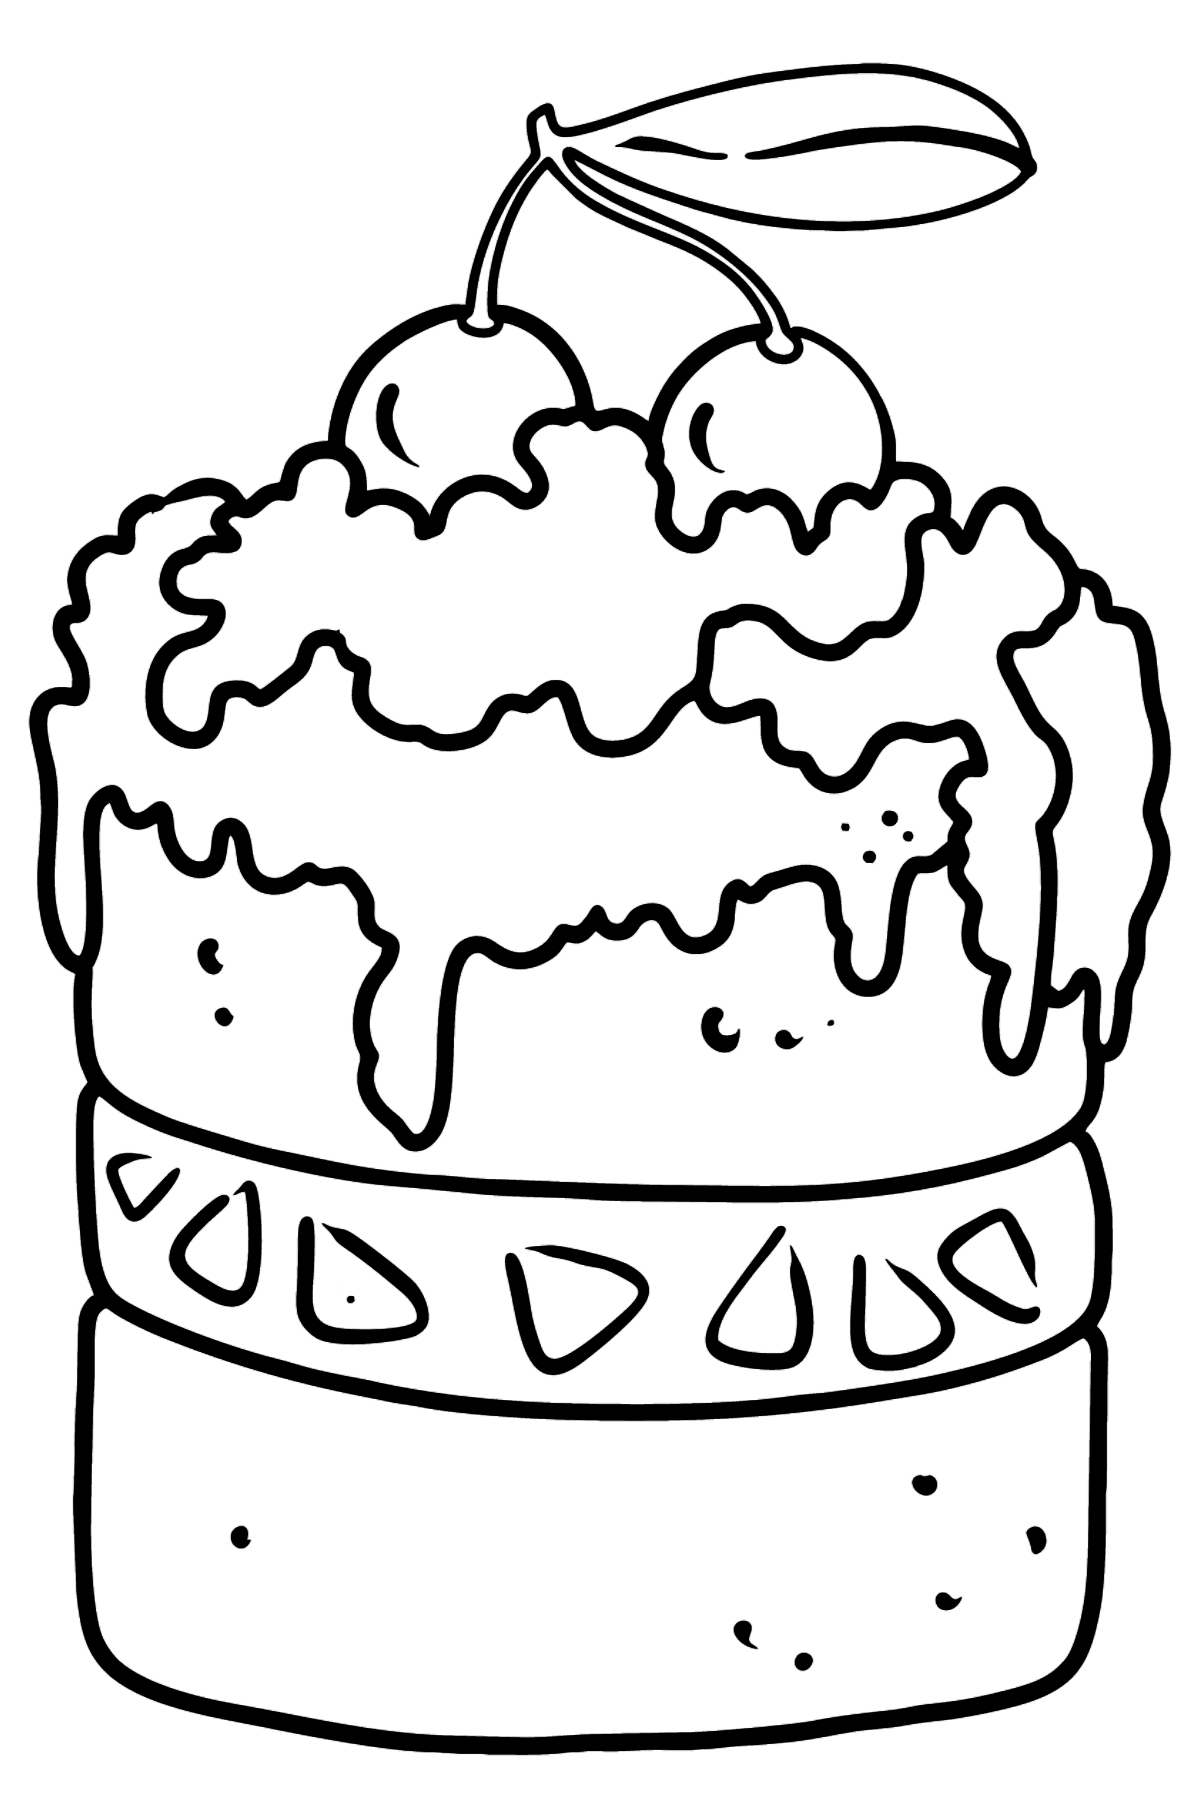 Cherry Cake coloring page - Coloring Pages for Kids